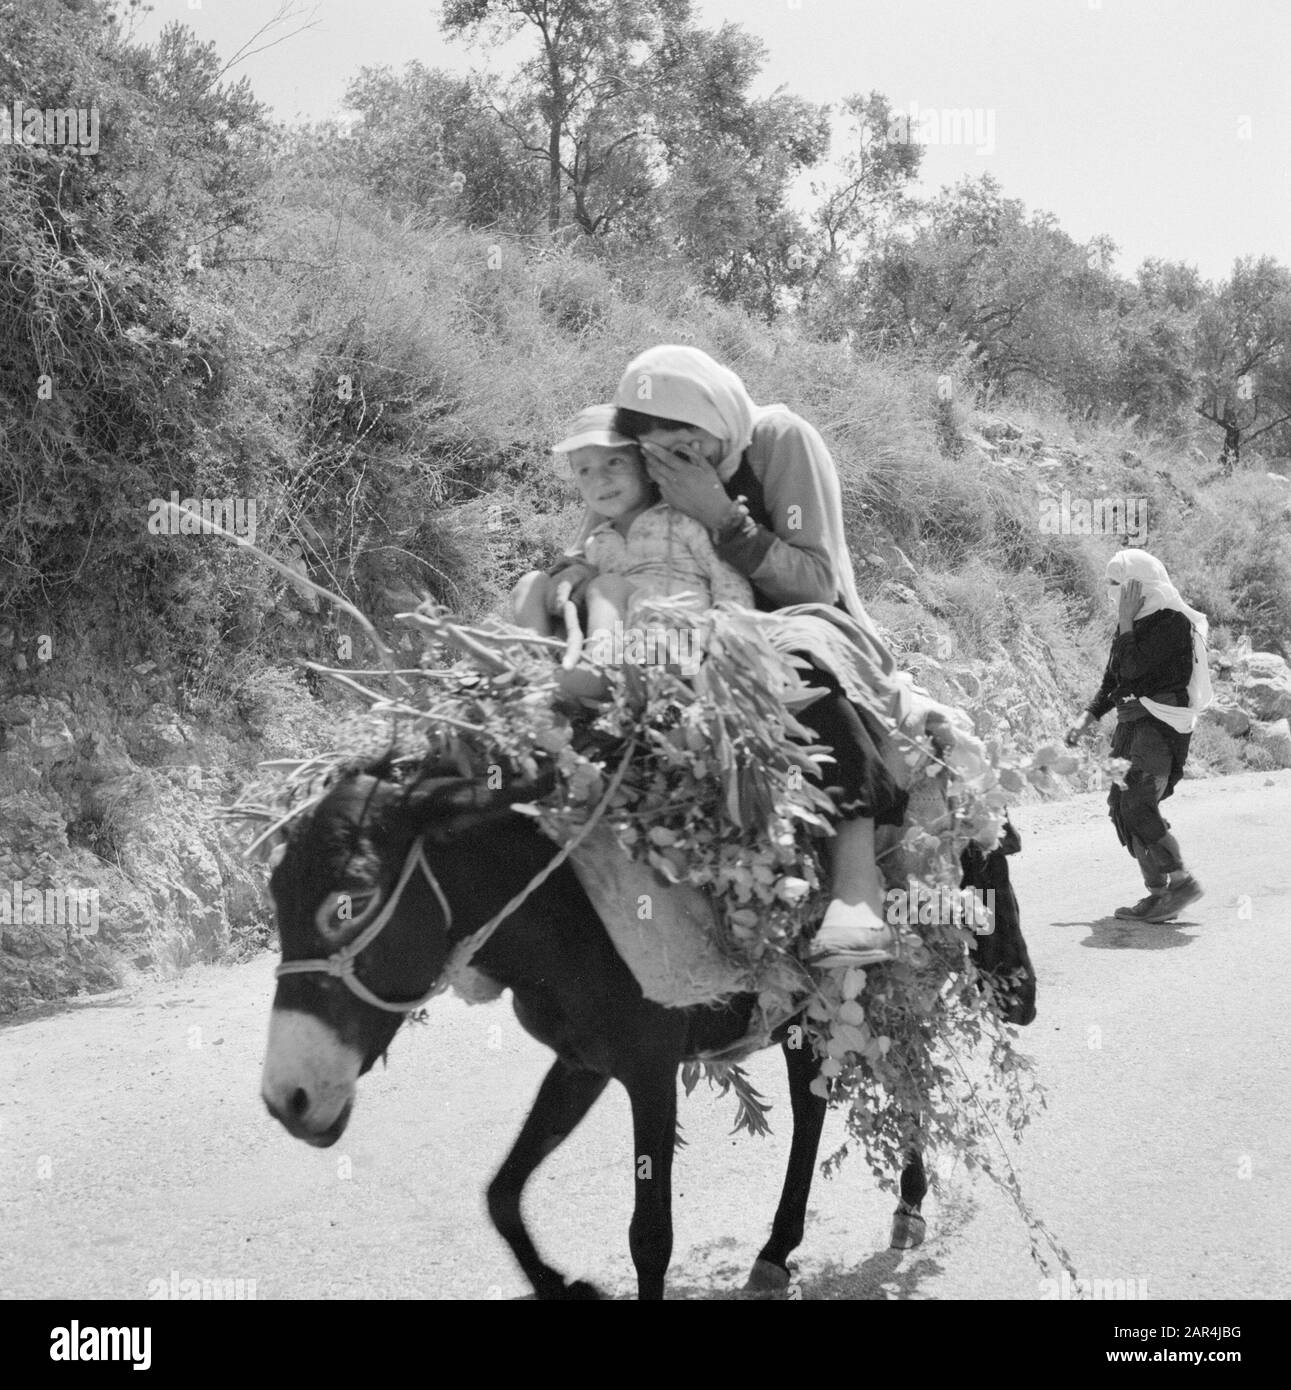 Druznia woman with child on a donkey on a country road. The woman hides the face by hand from the photographer Date: January 1, 1963 Location: Israel Keywords: donkeys, children, transport, roads Stock Photo